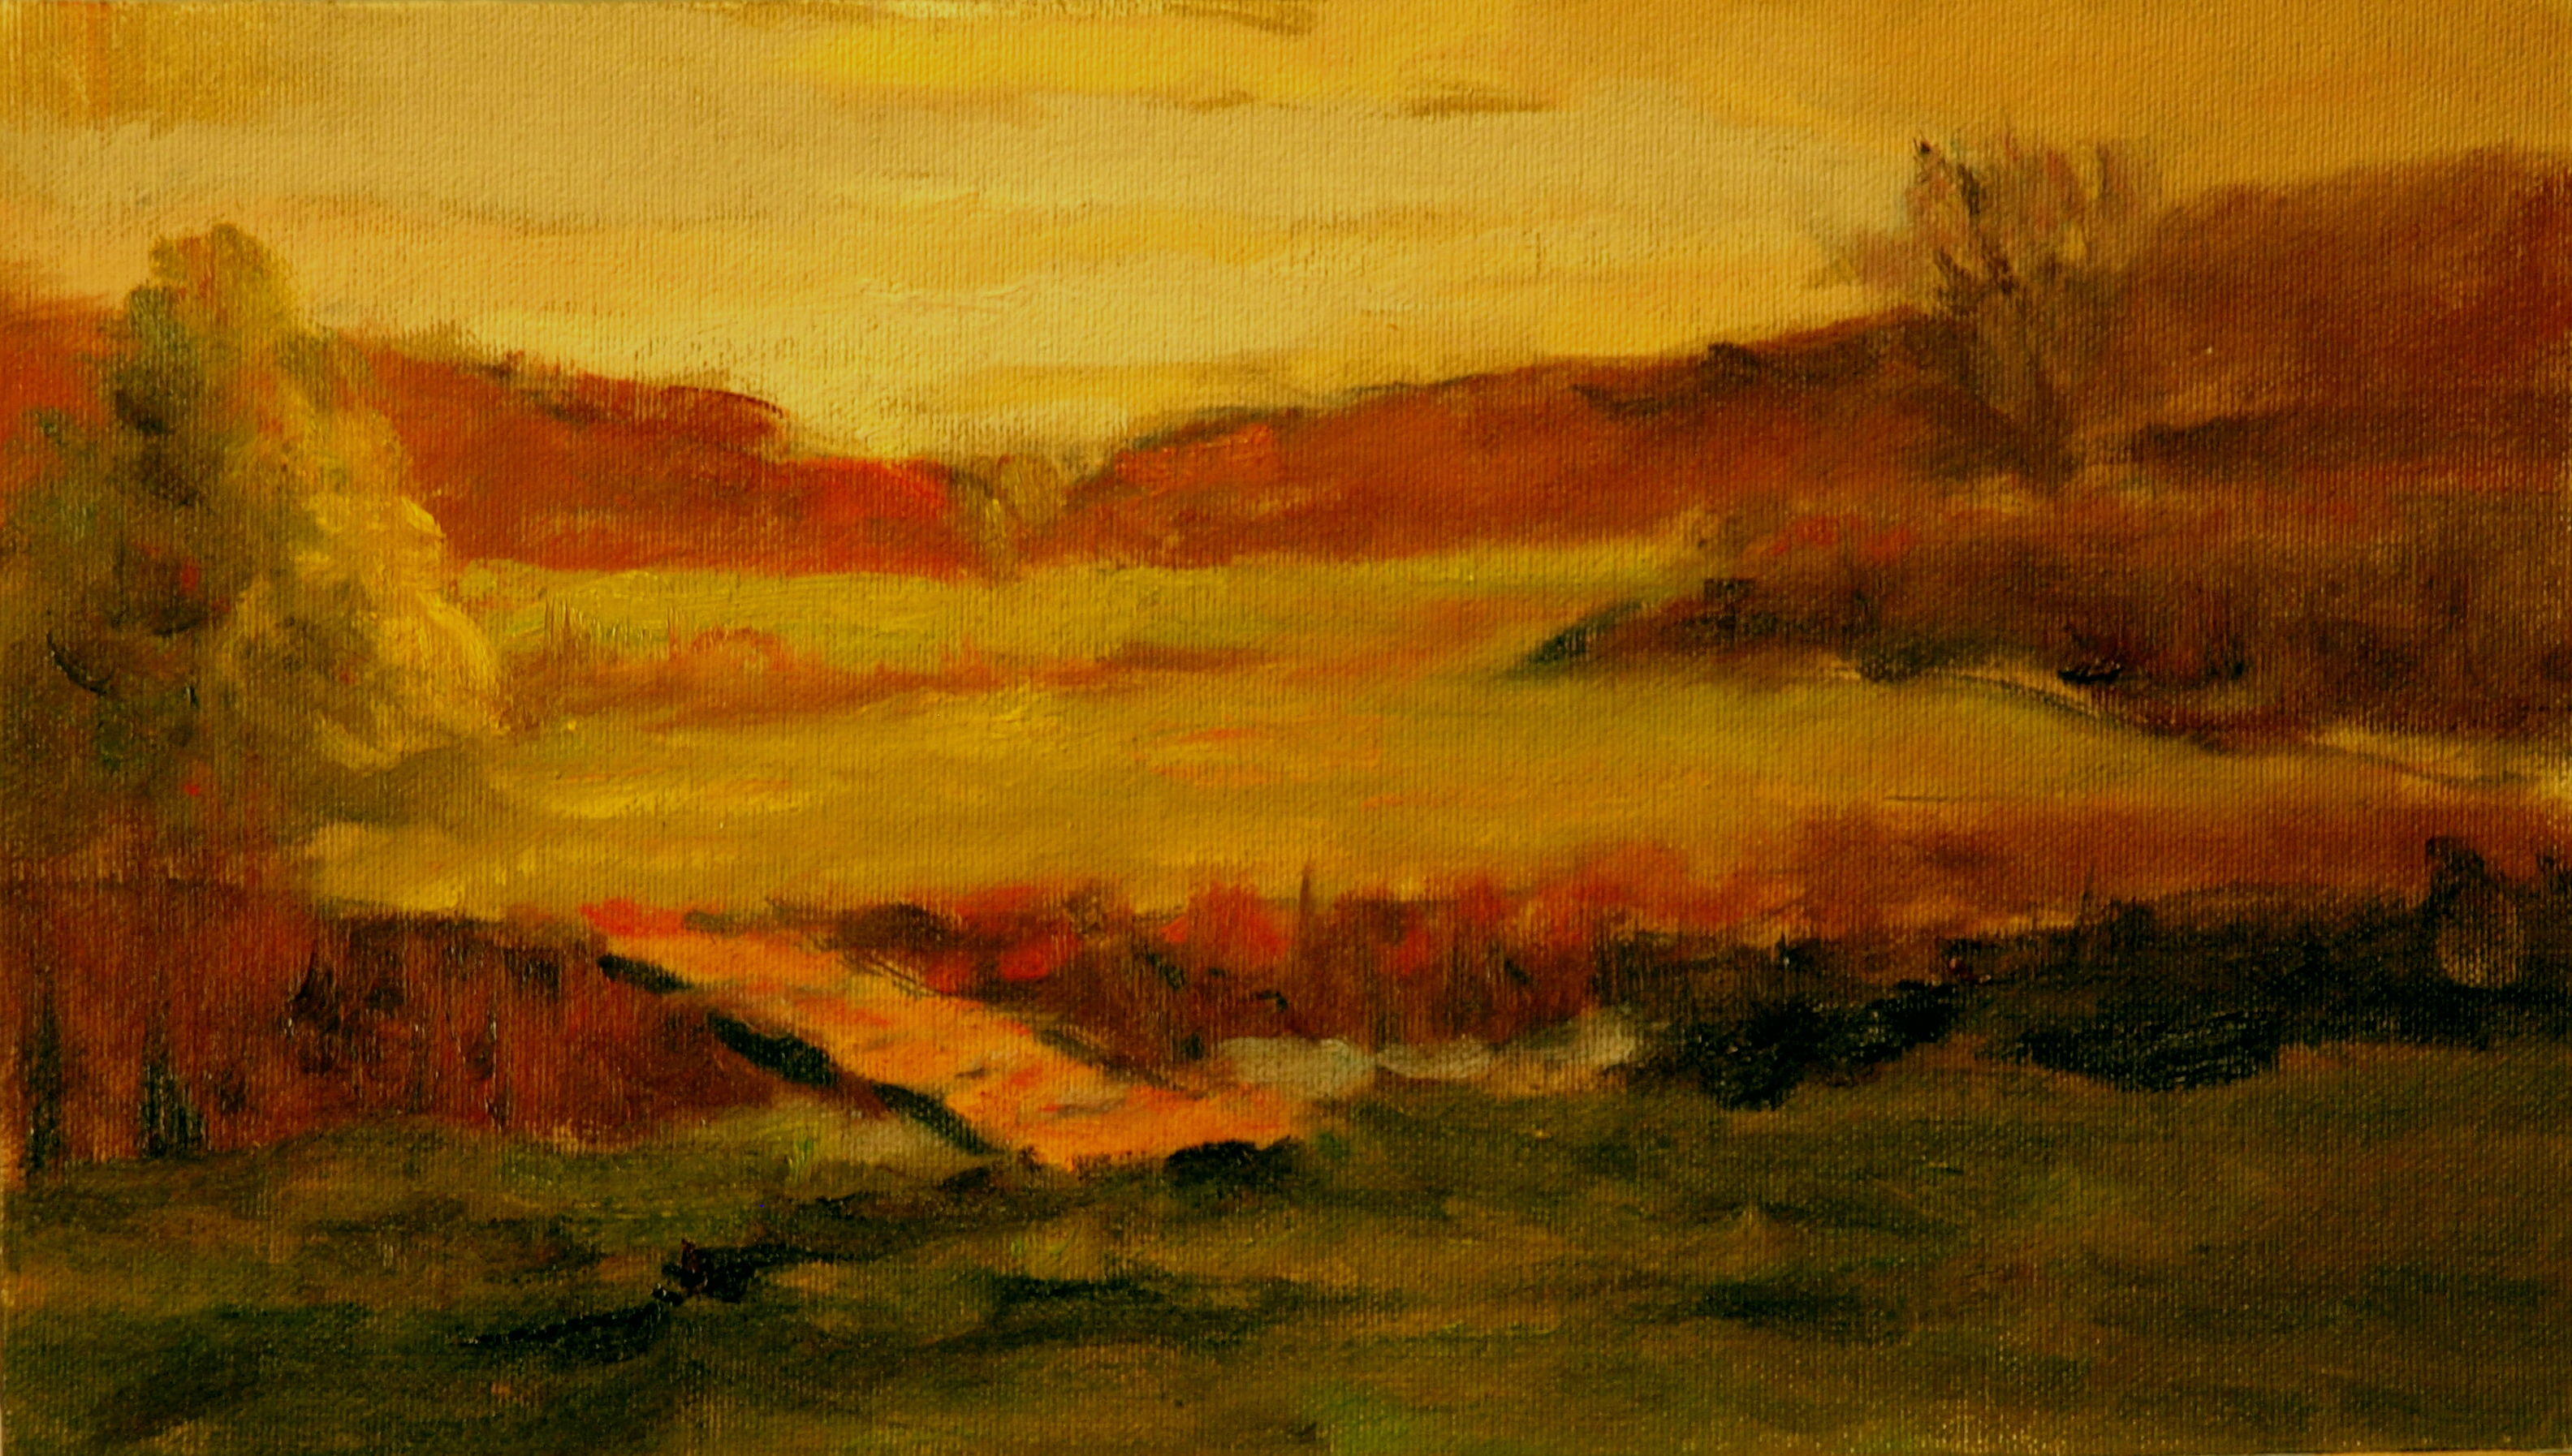 The Footbridge, Oil on Canvas on Panel, 8 x 14 Inches, by Richard Stalter, $225